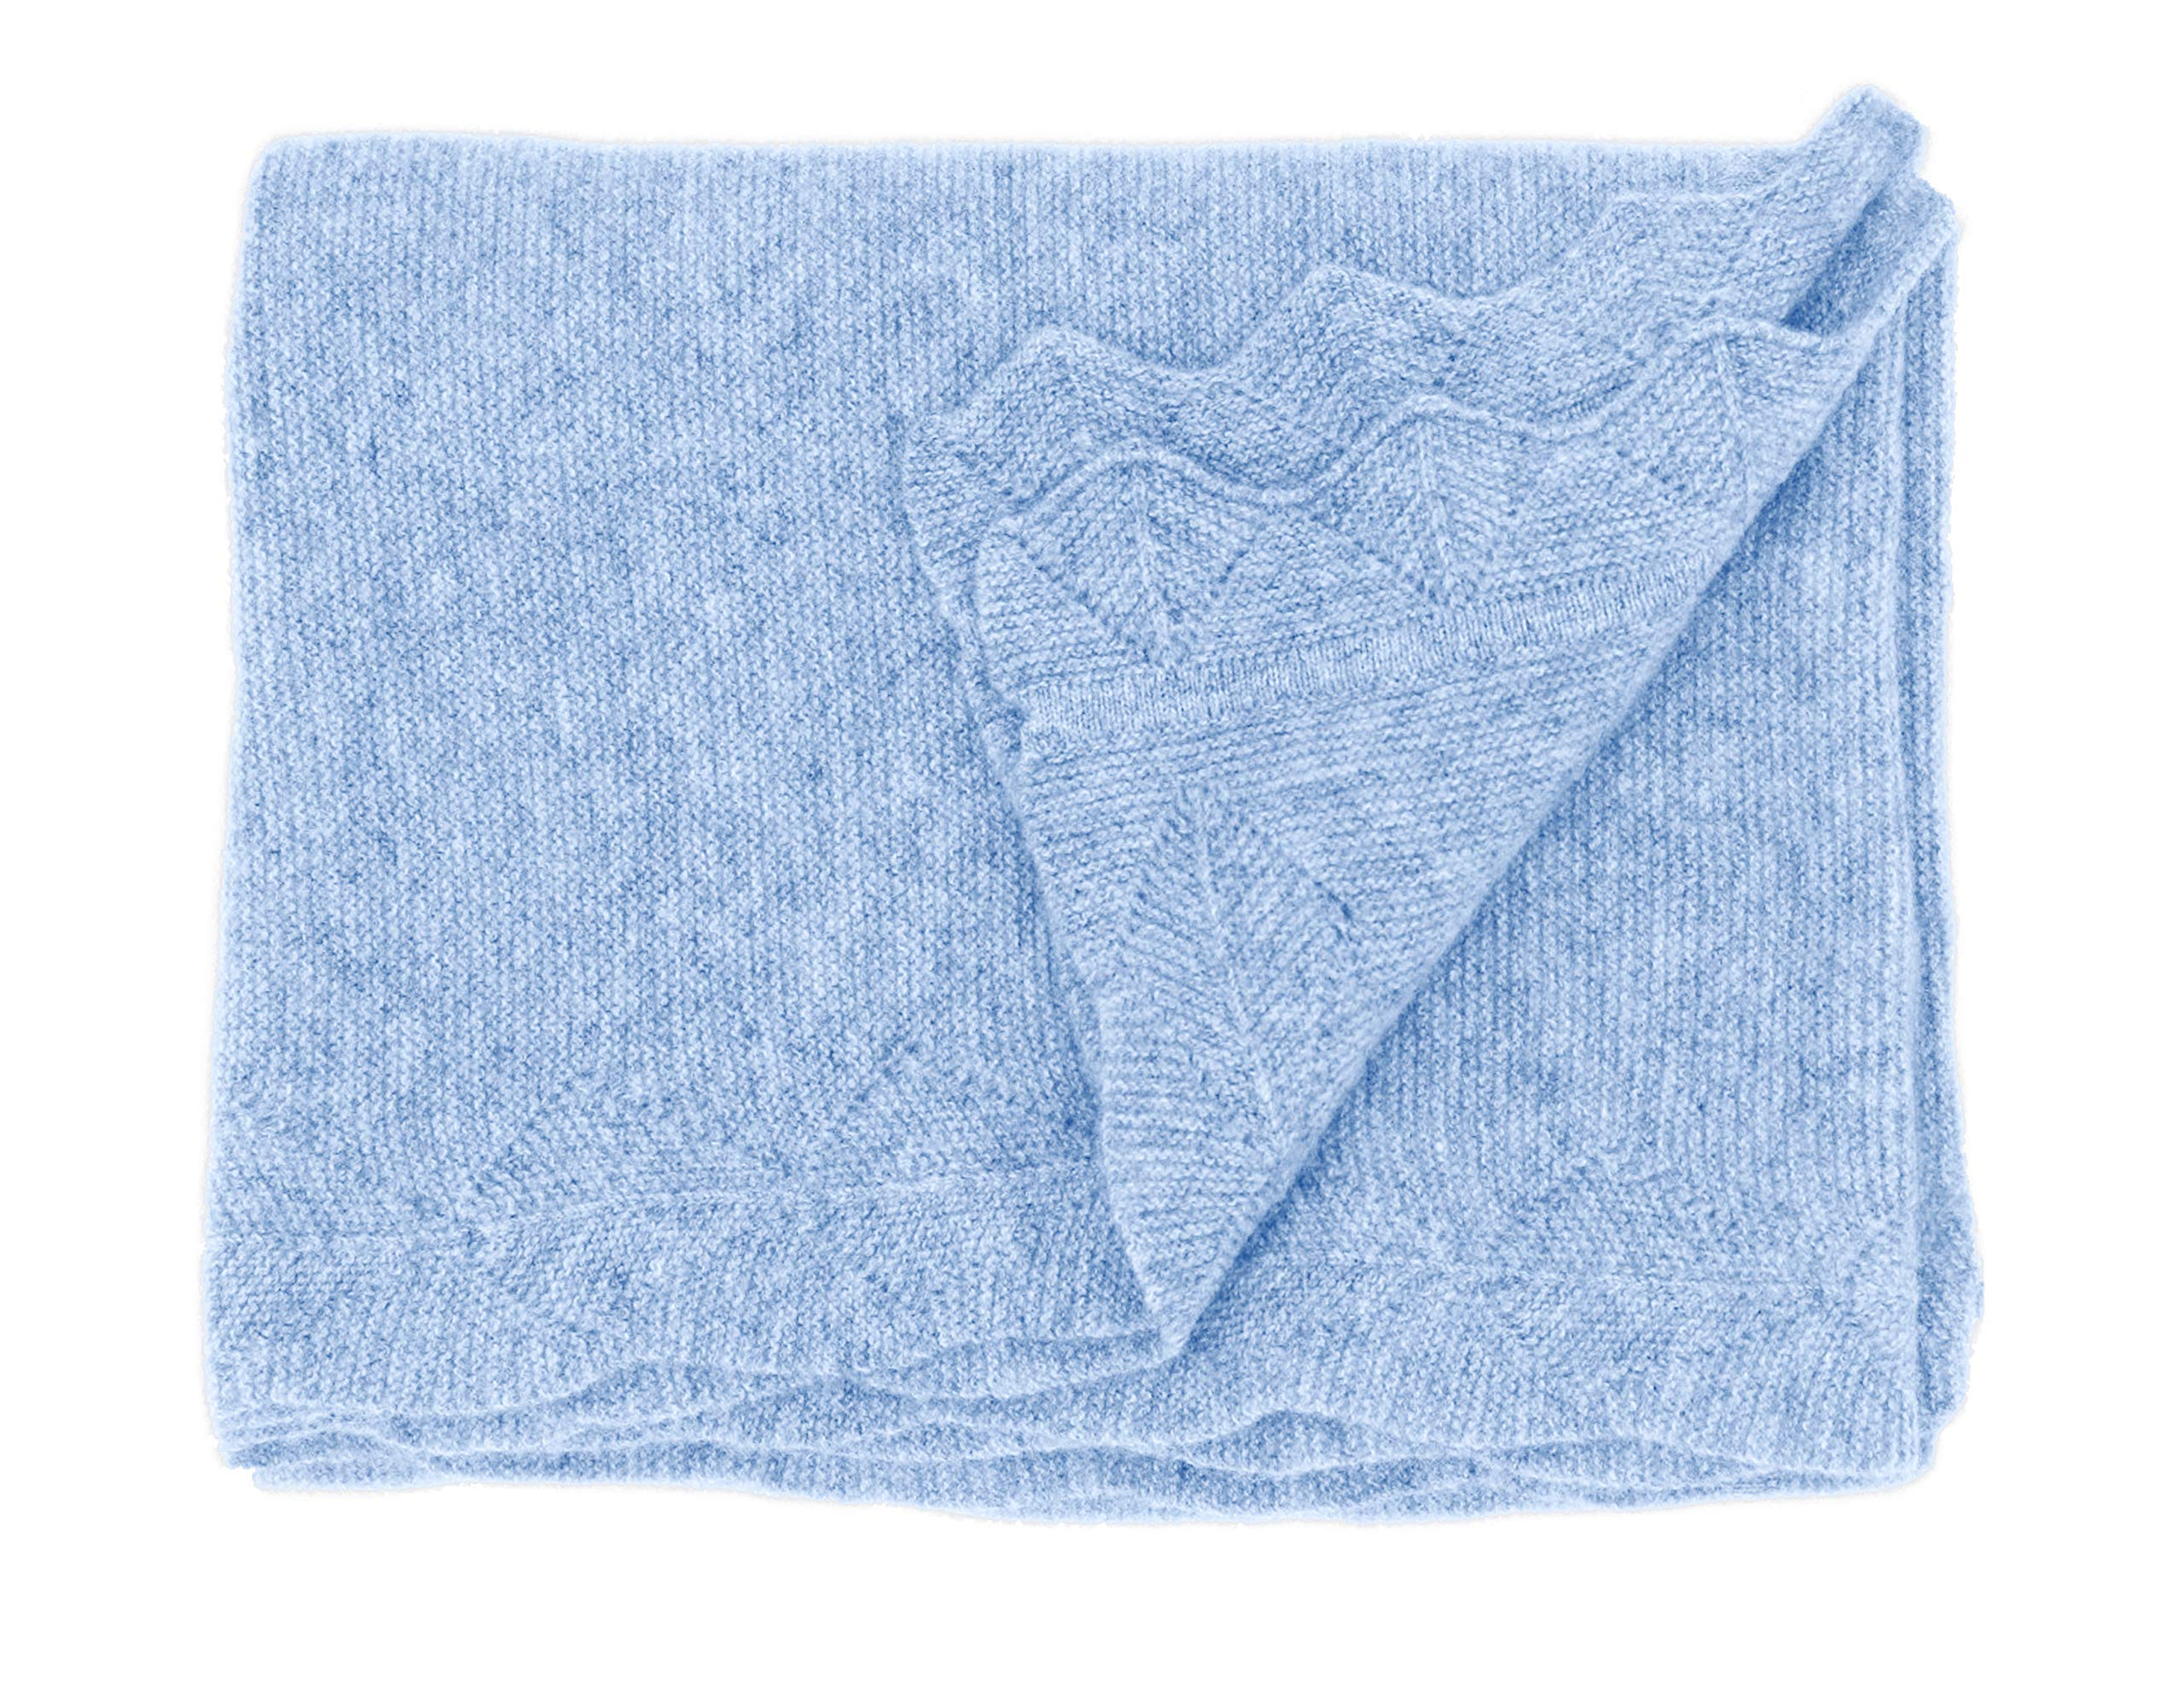 State Cashmere Luxe Stroller Baby Blanket 100% Pure Cashmere Travel Wrap Lightweight and Warm • 40 x 30 inches (Baby Blue)